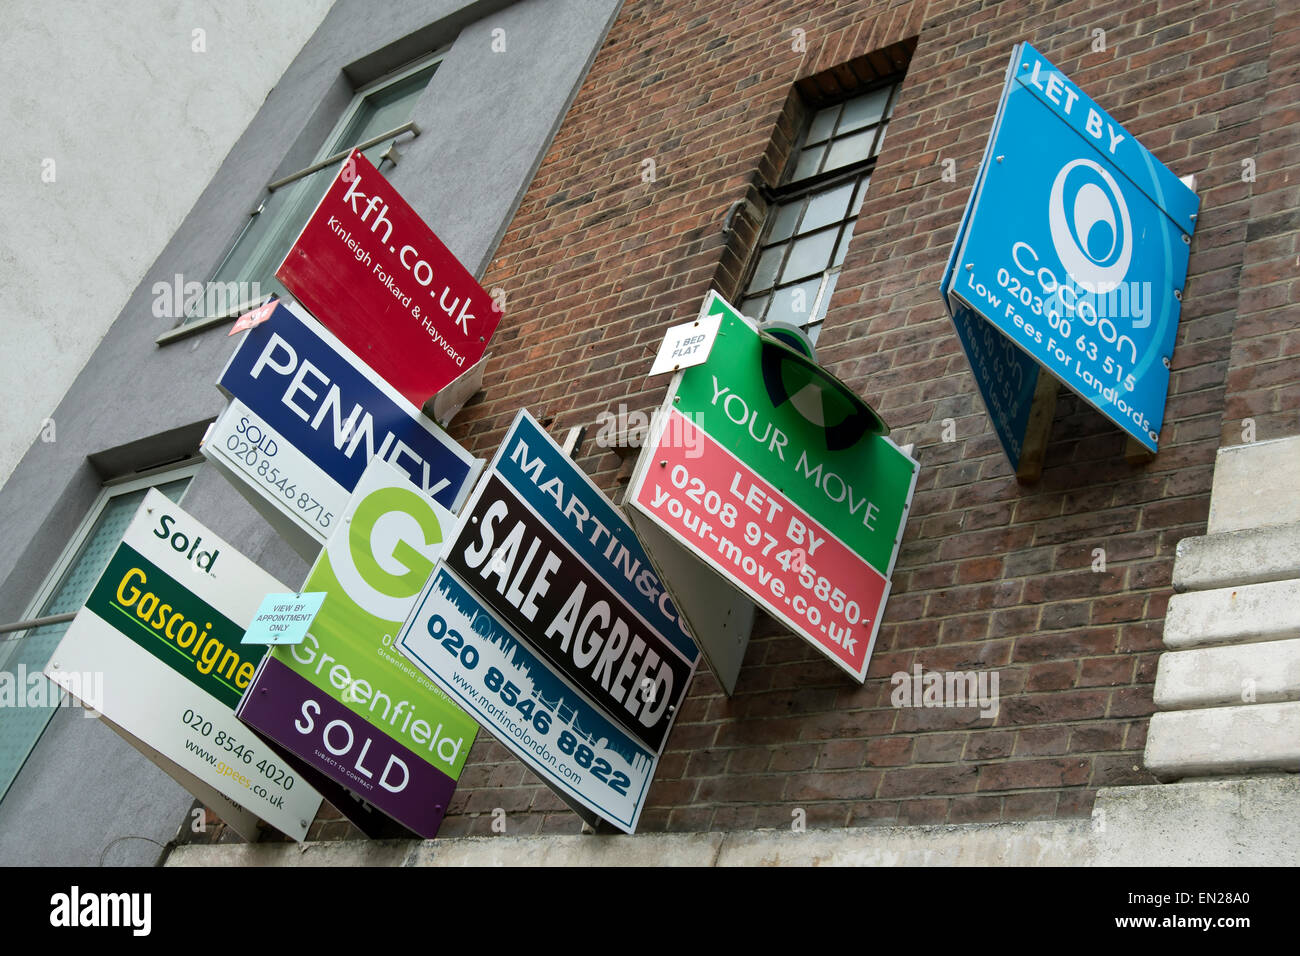 cluster of estate agents signs, for sales and lettings, on a building in kingston upon thames, surrey, england - Stock Image